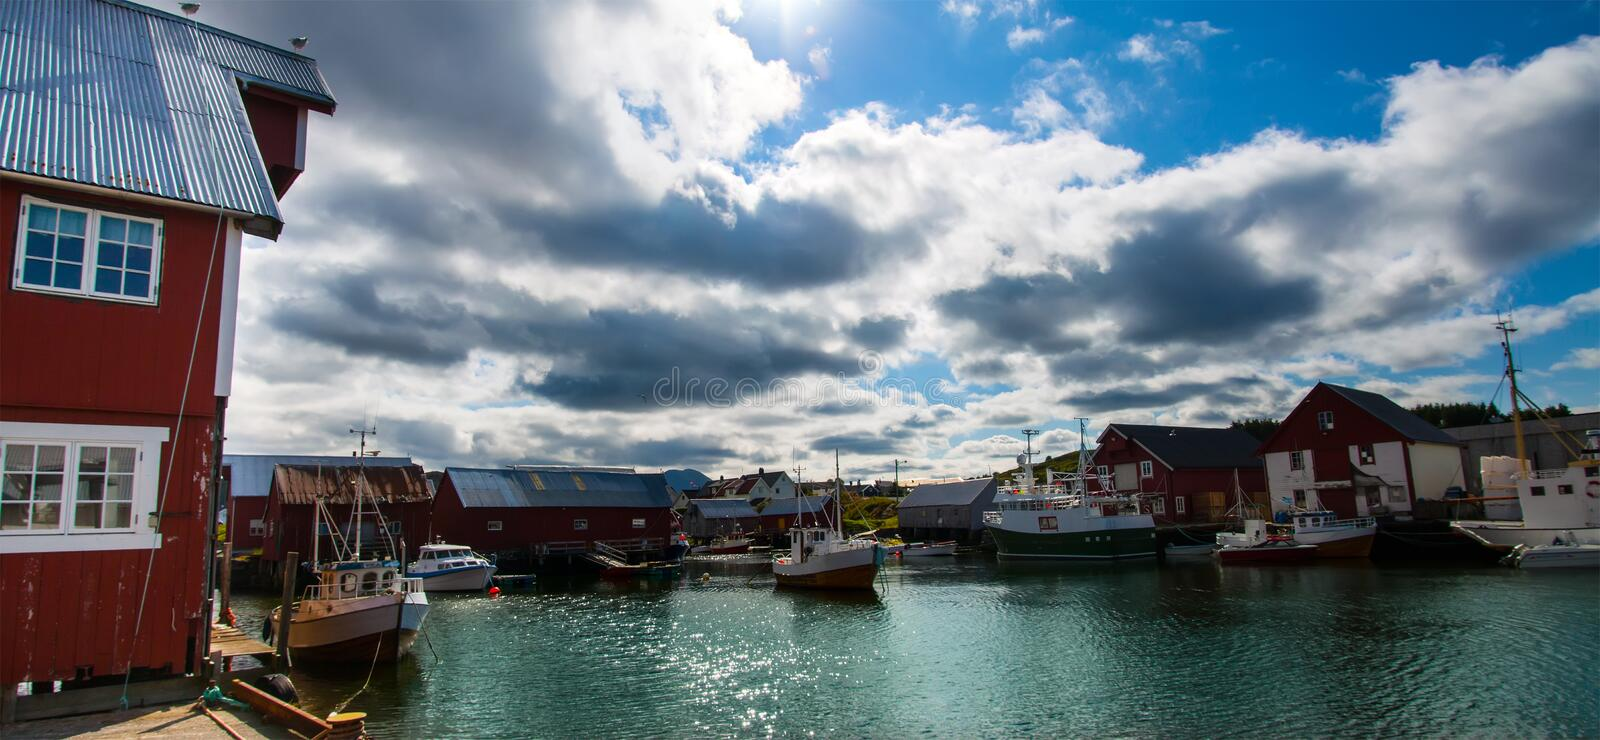 View of scandinavian fishing village, Bud, Norway royalty free stock image